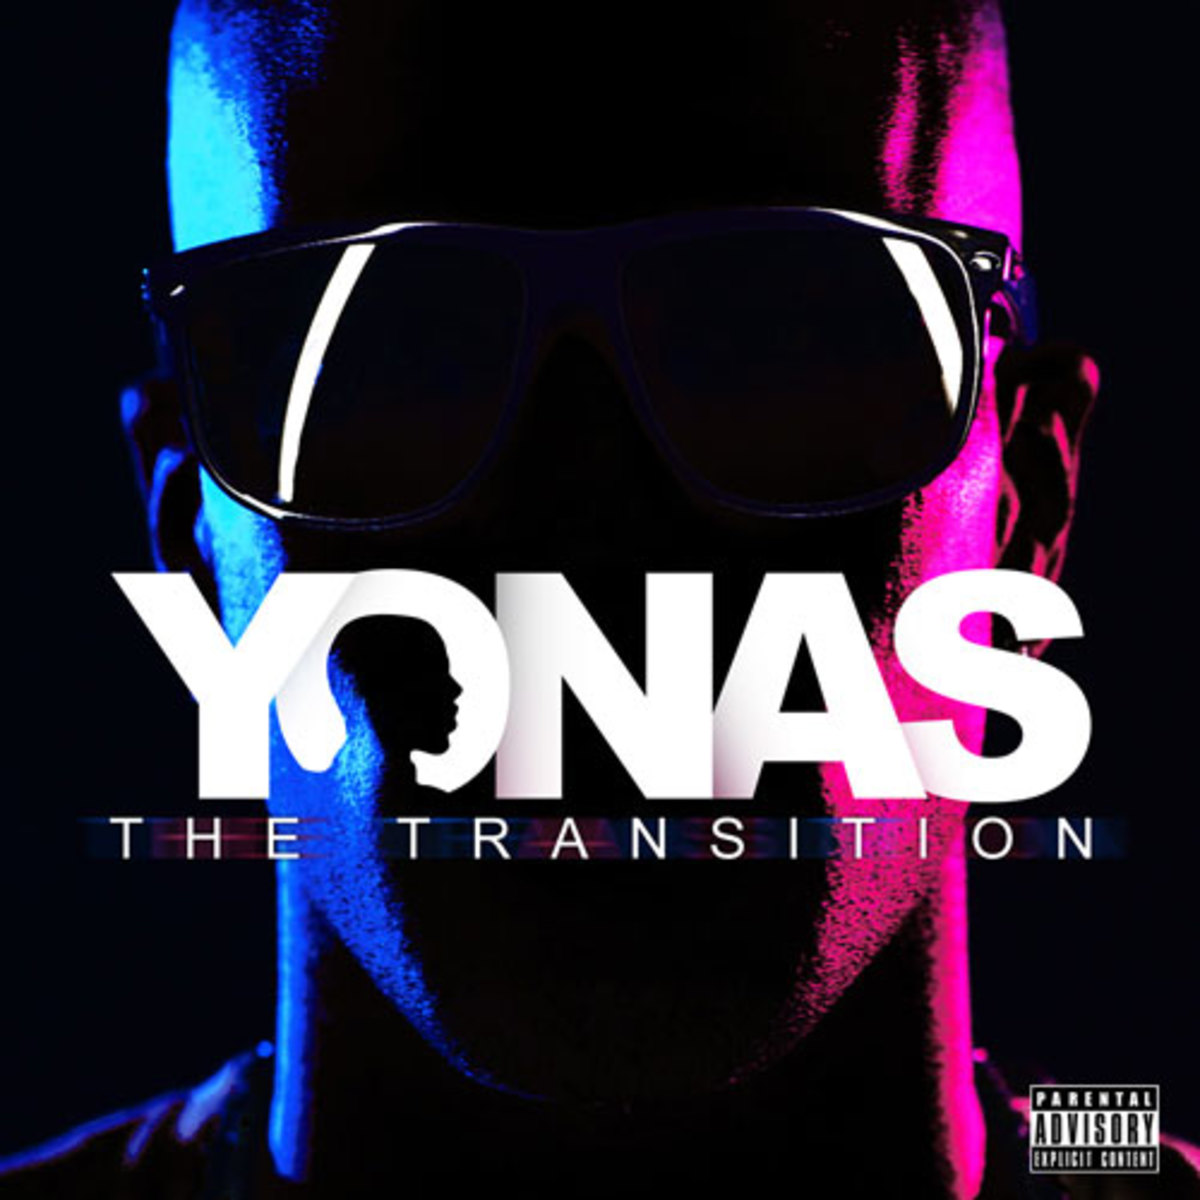 yonas-thetransition.jpg